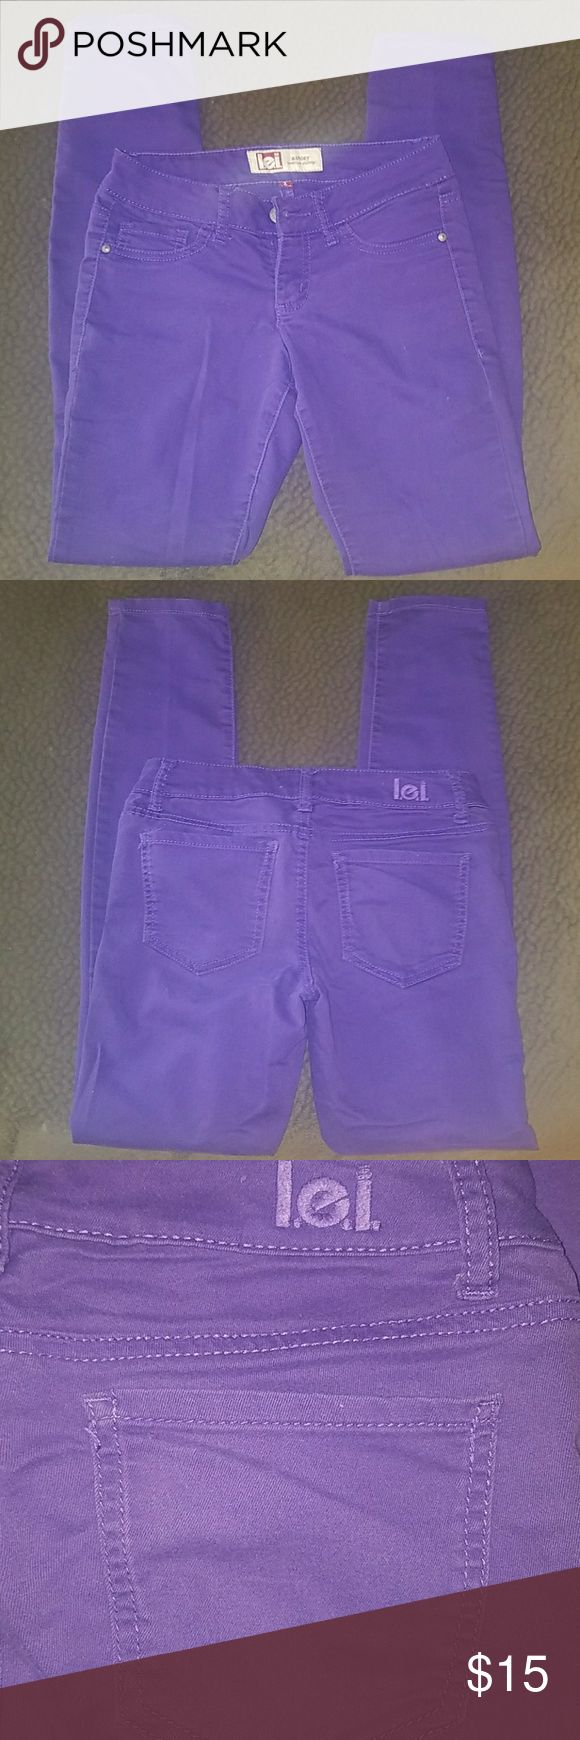 """Purple LEI lowrise skinny juniors pants size 1 Purple LEI pants (they look like jeans, but it's not denim - it's a stretchy pant material). Style is """"Ashley"""" lowrise skinny. Juniors size 1. Laying flat measures 14"""" across with 29"""" inseam. lei Pants"""